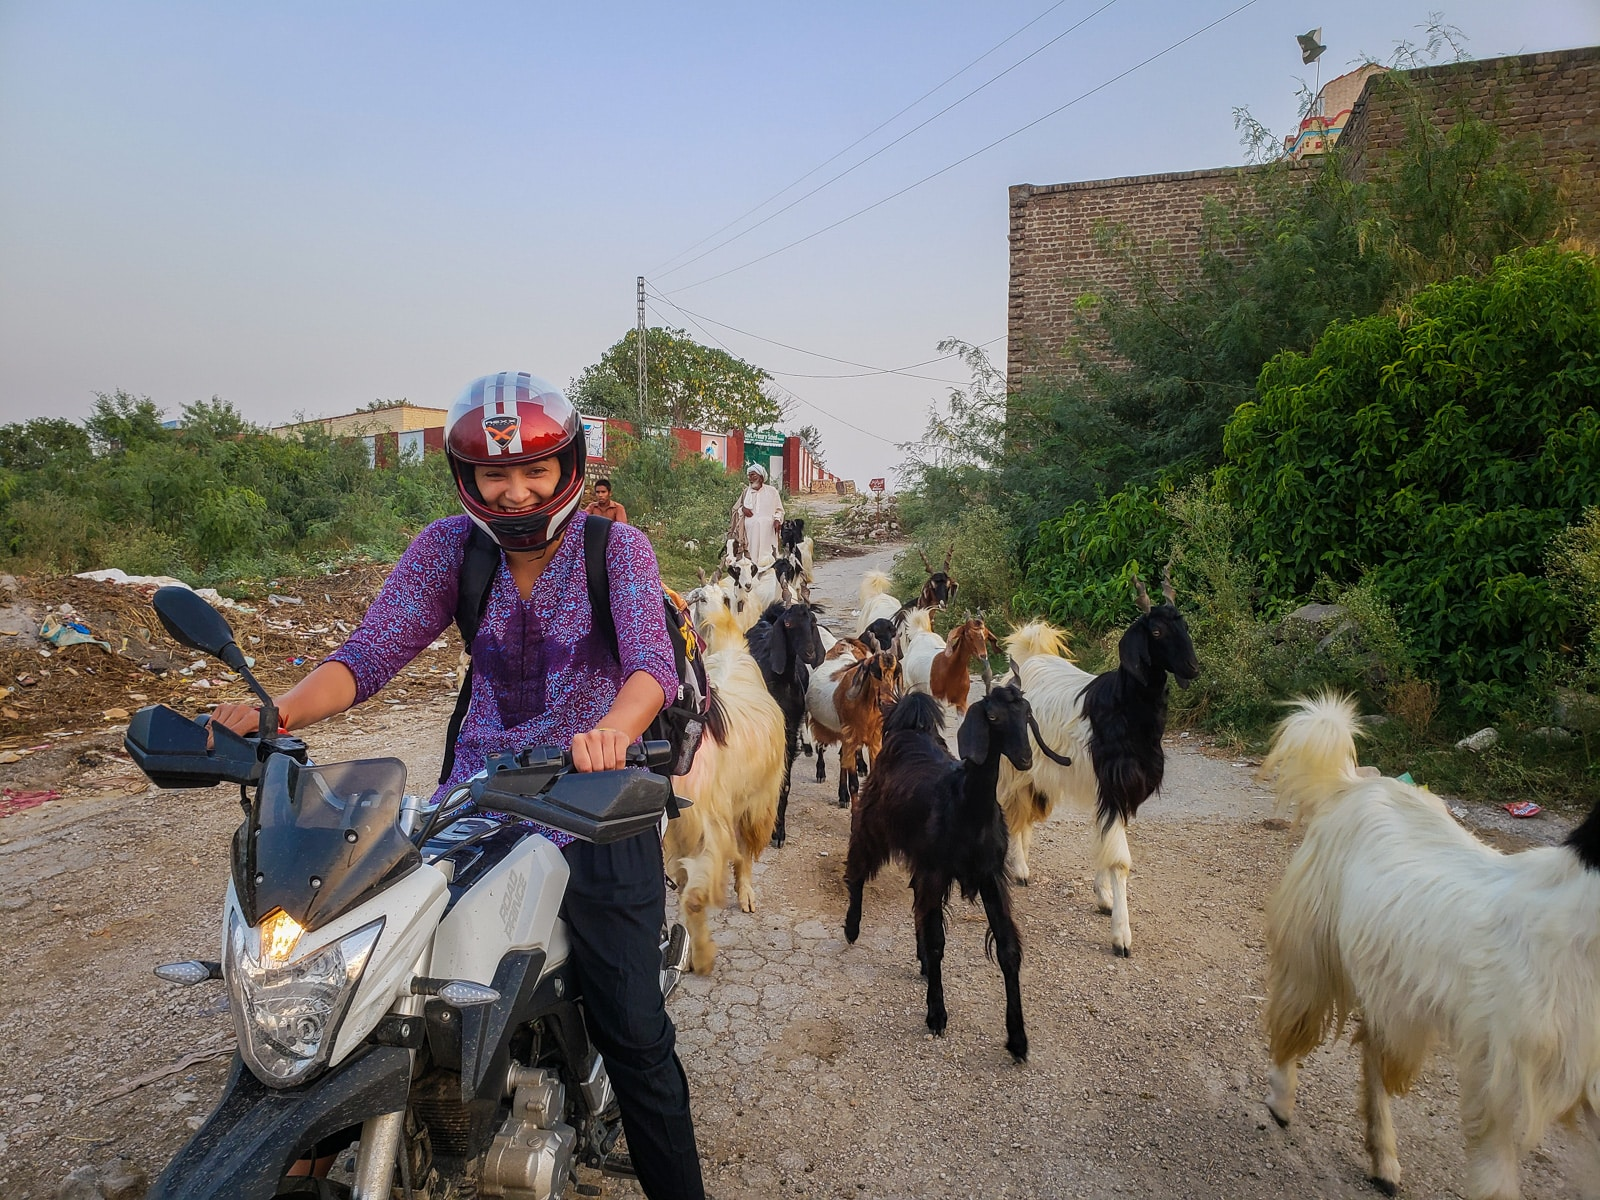 Motorbiking as a woman in Pakistan - Goats surrounding motorbike - Lost With Purpose travel blog